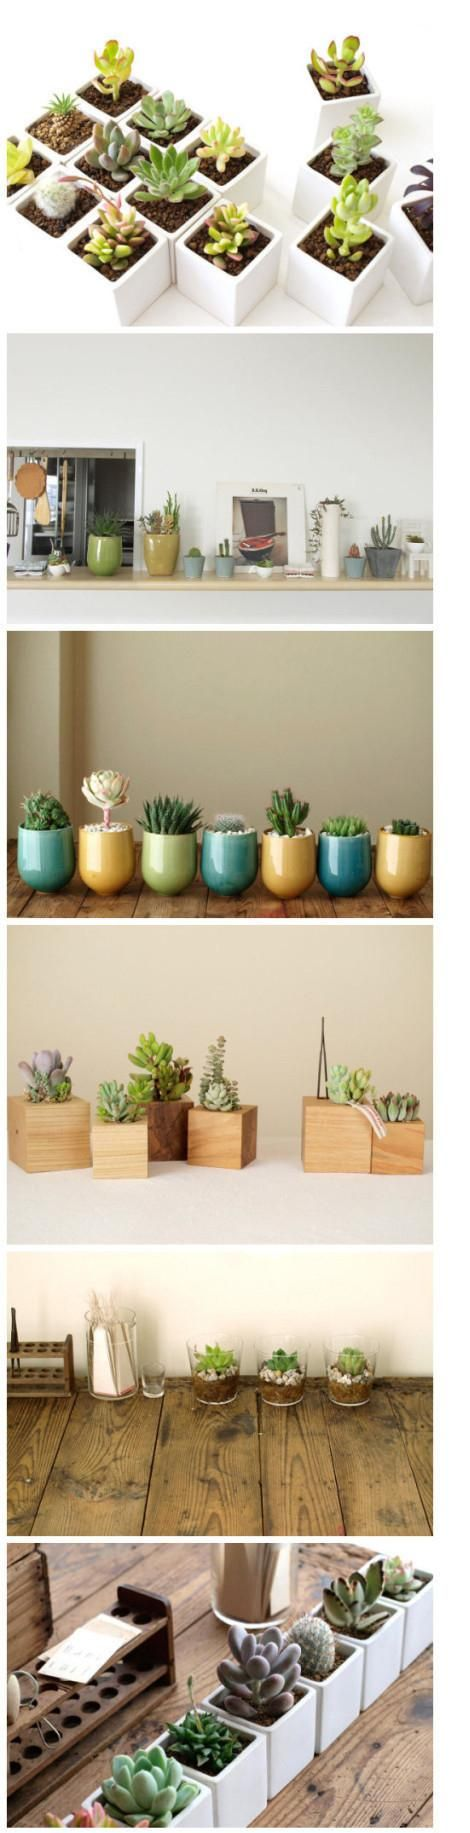 Cute succulent potting ideas.